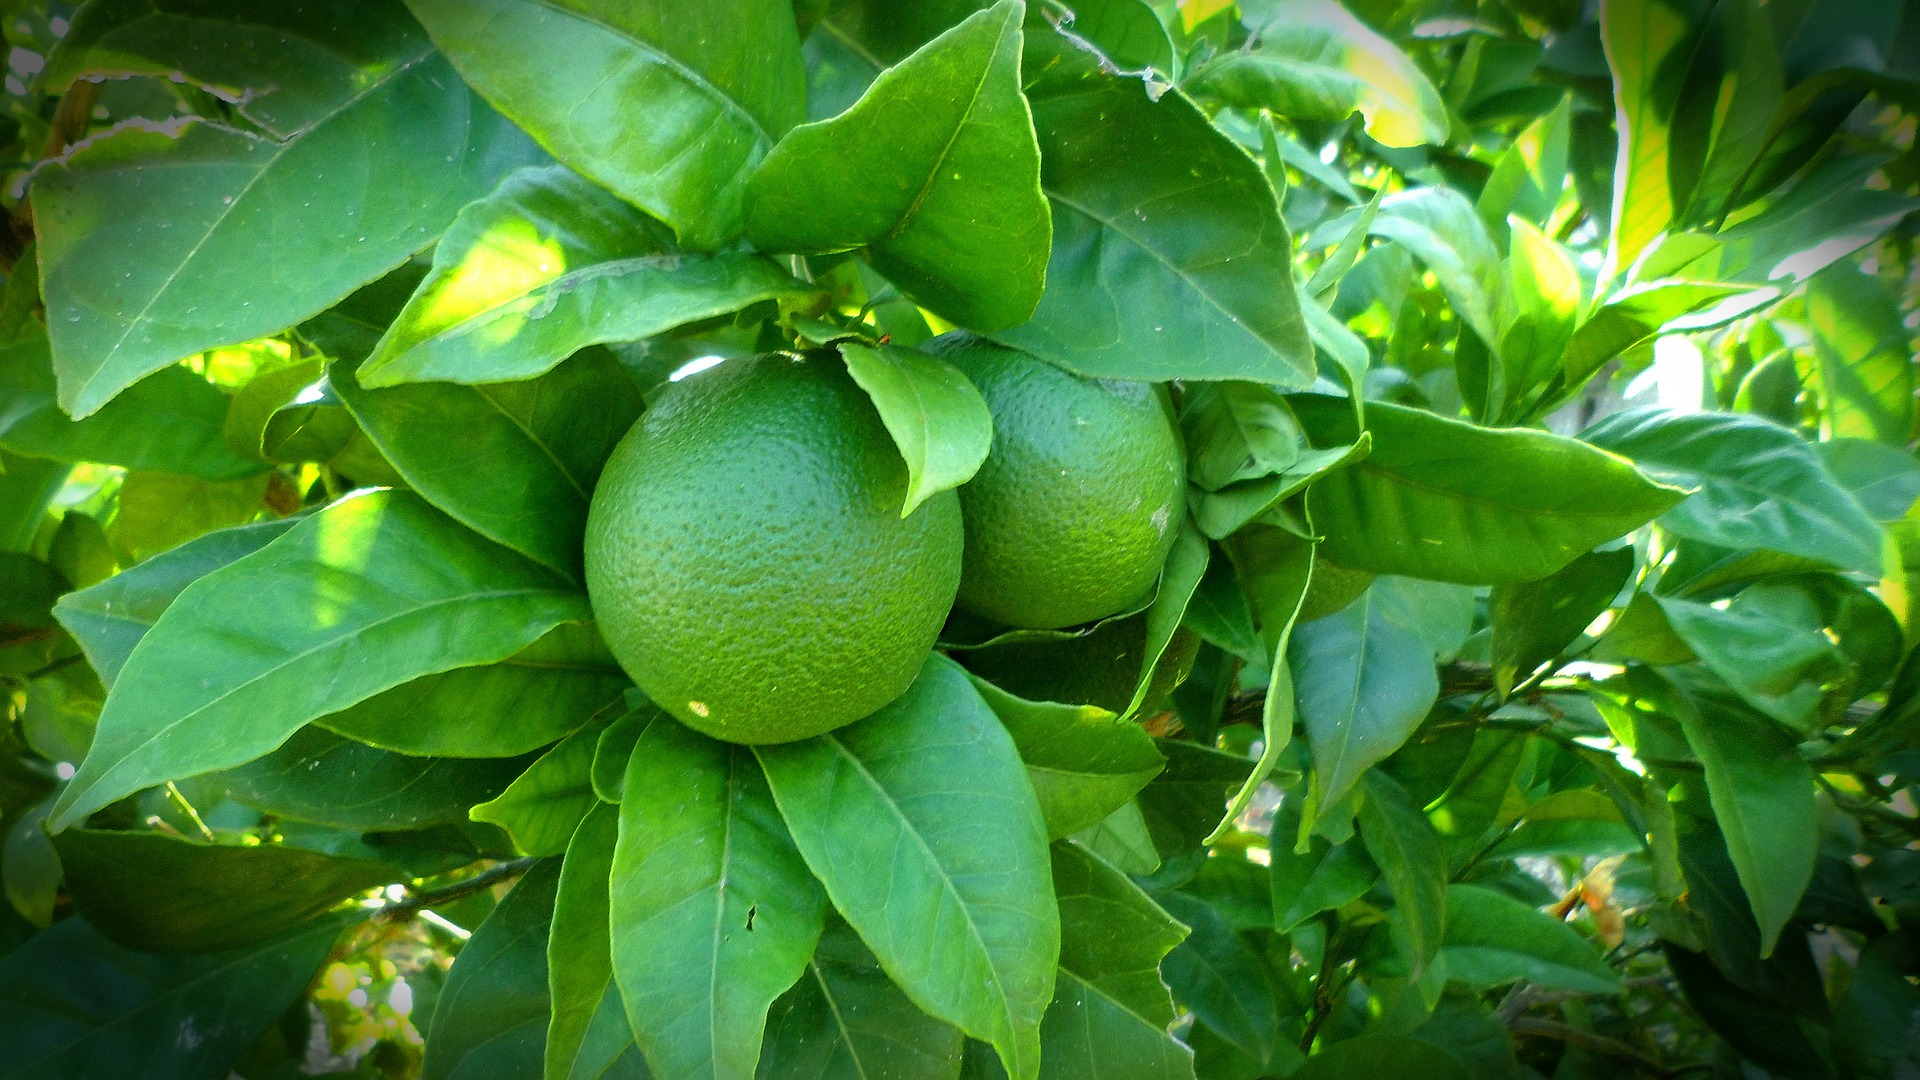 green limes on a tree, photo by Noemi Martinez